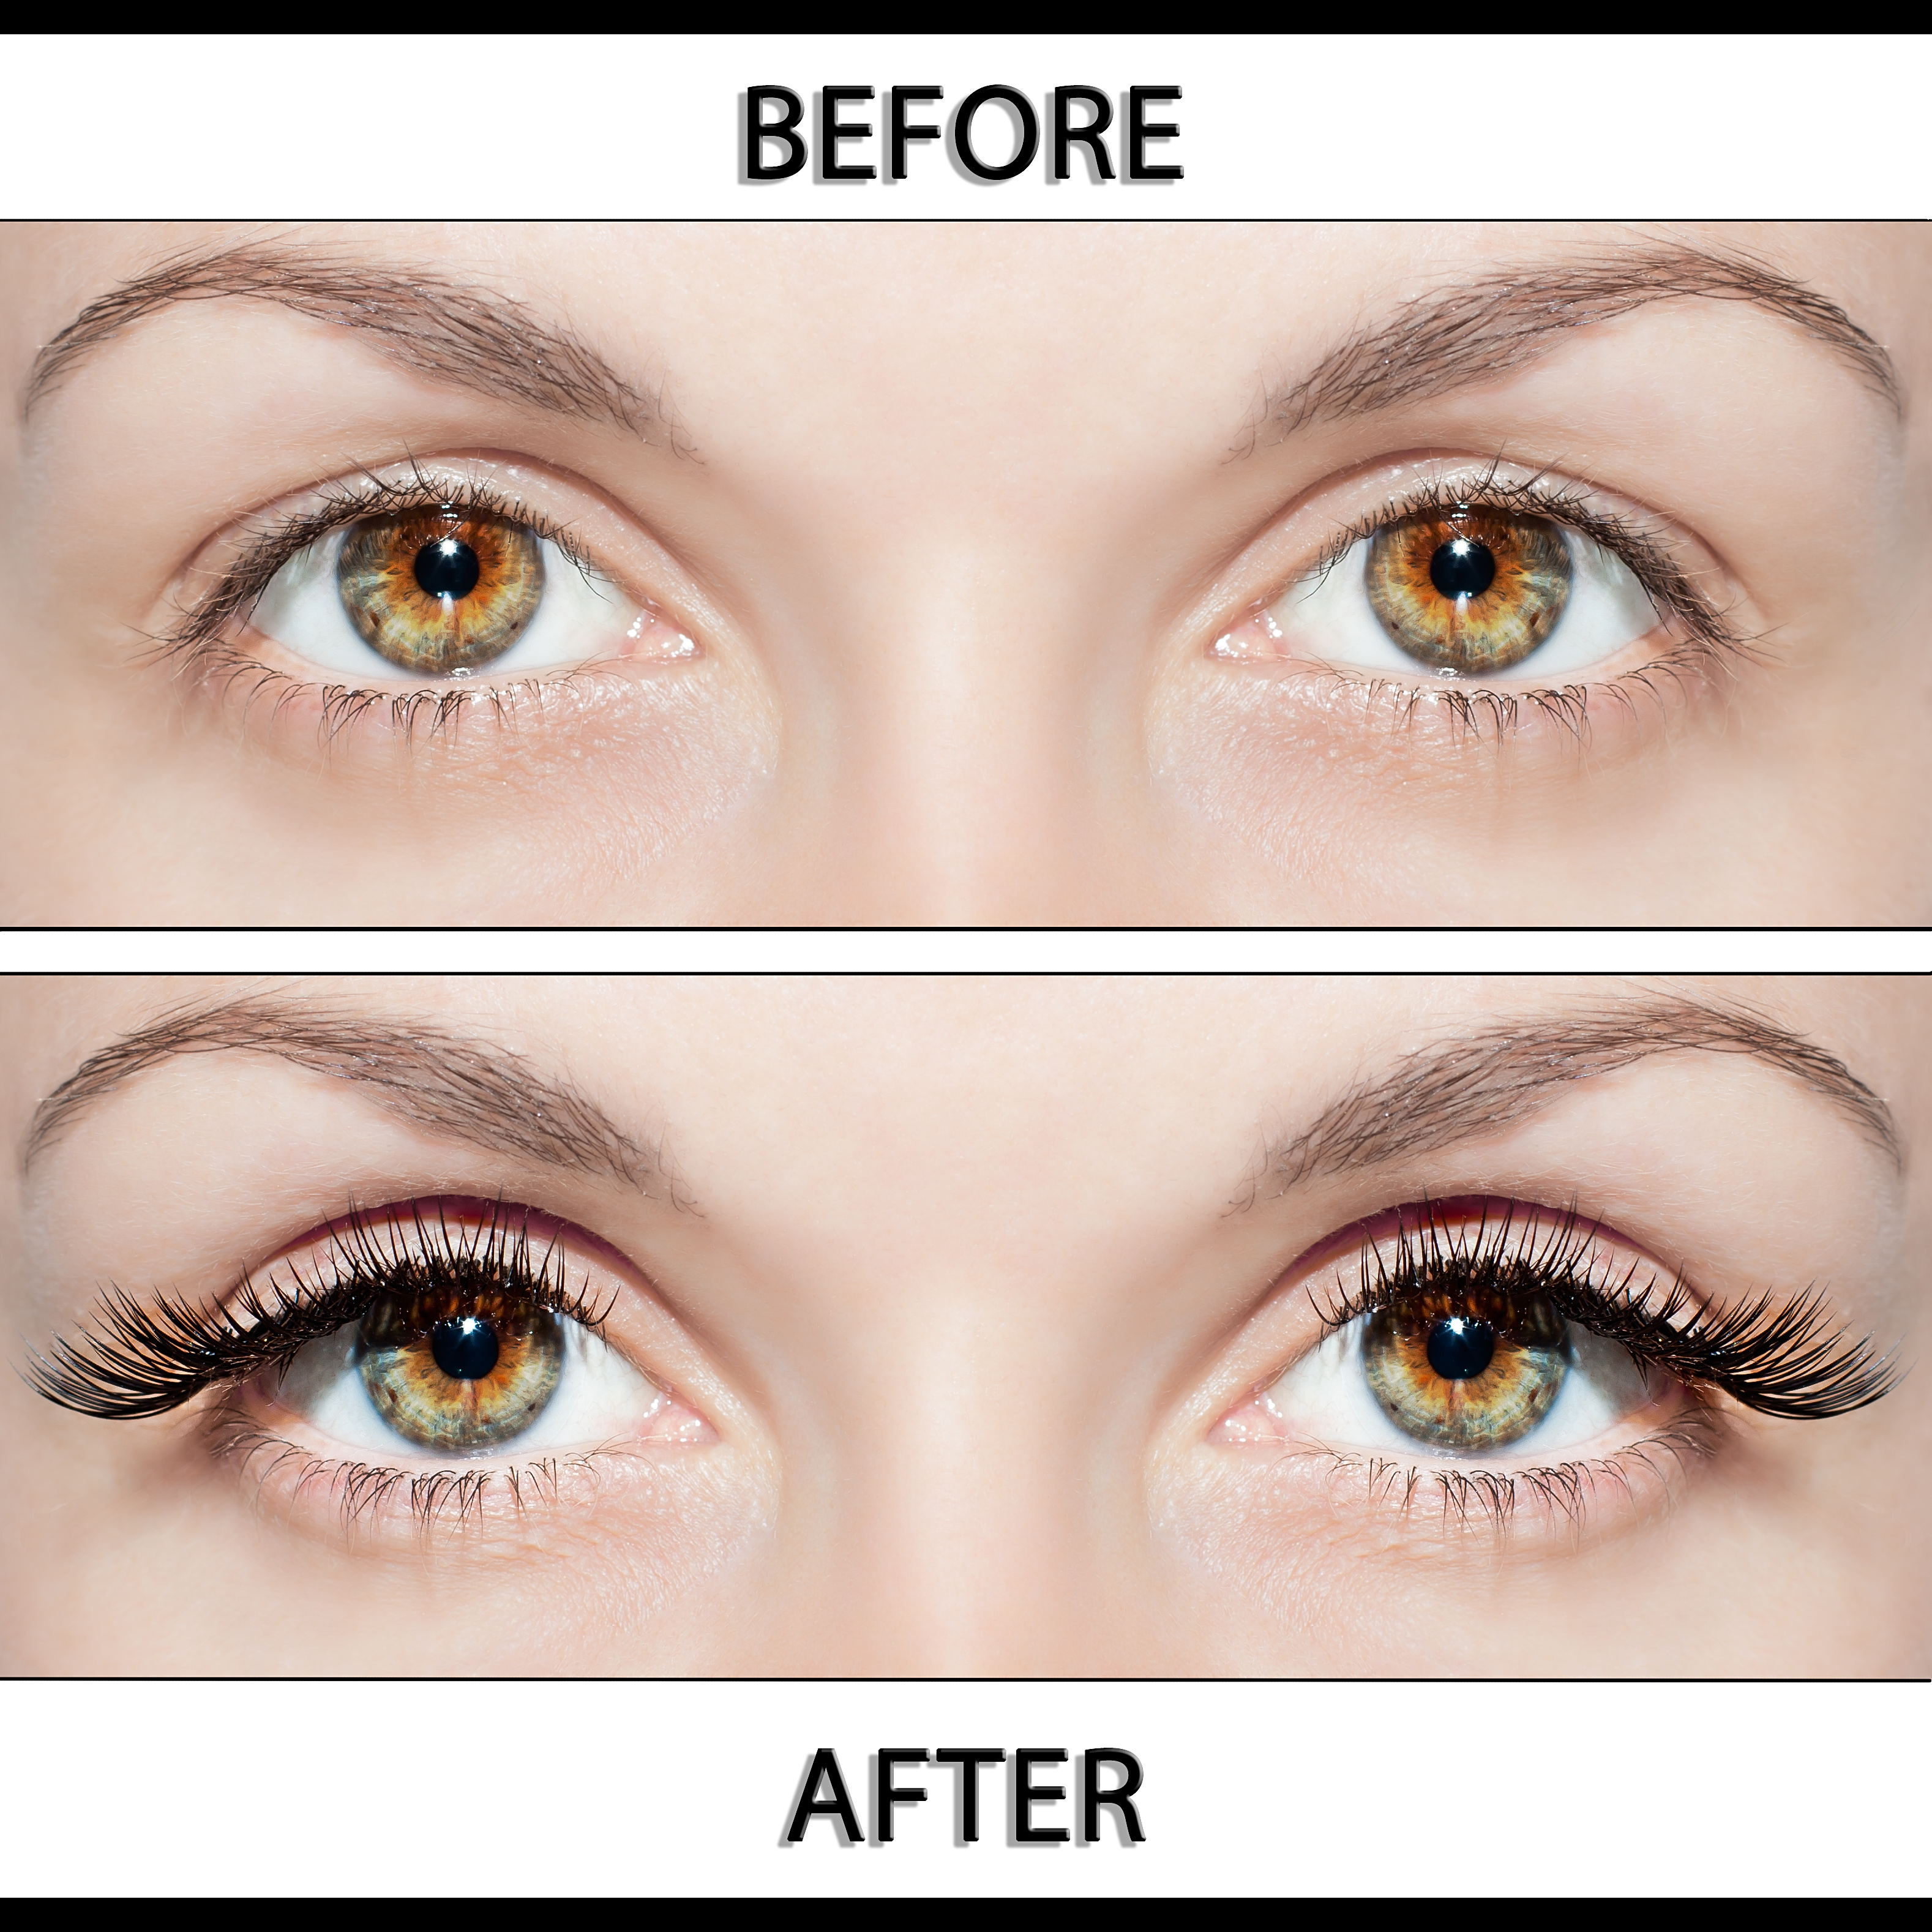 How To Take Care Of Your Eyes Naturally